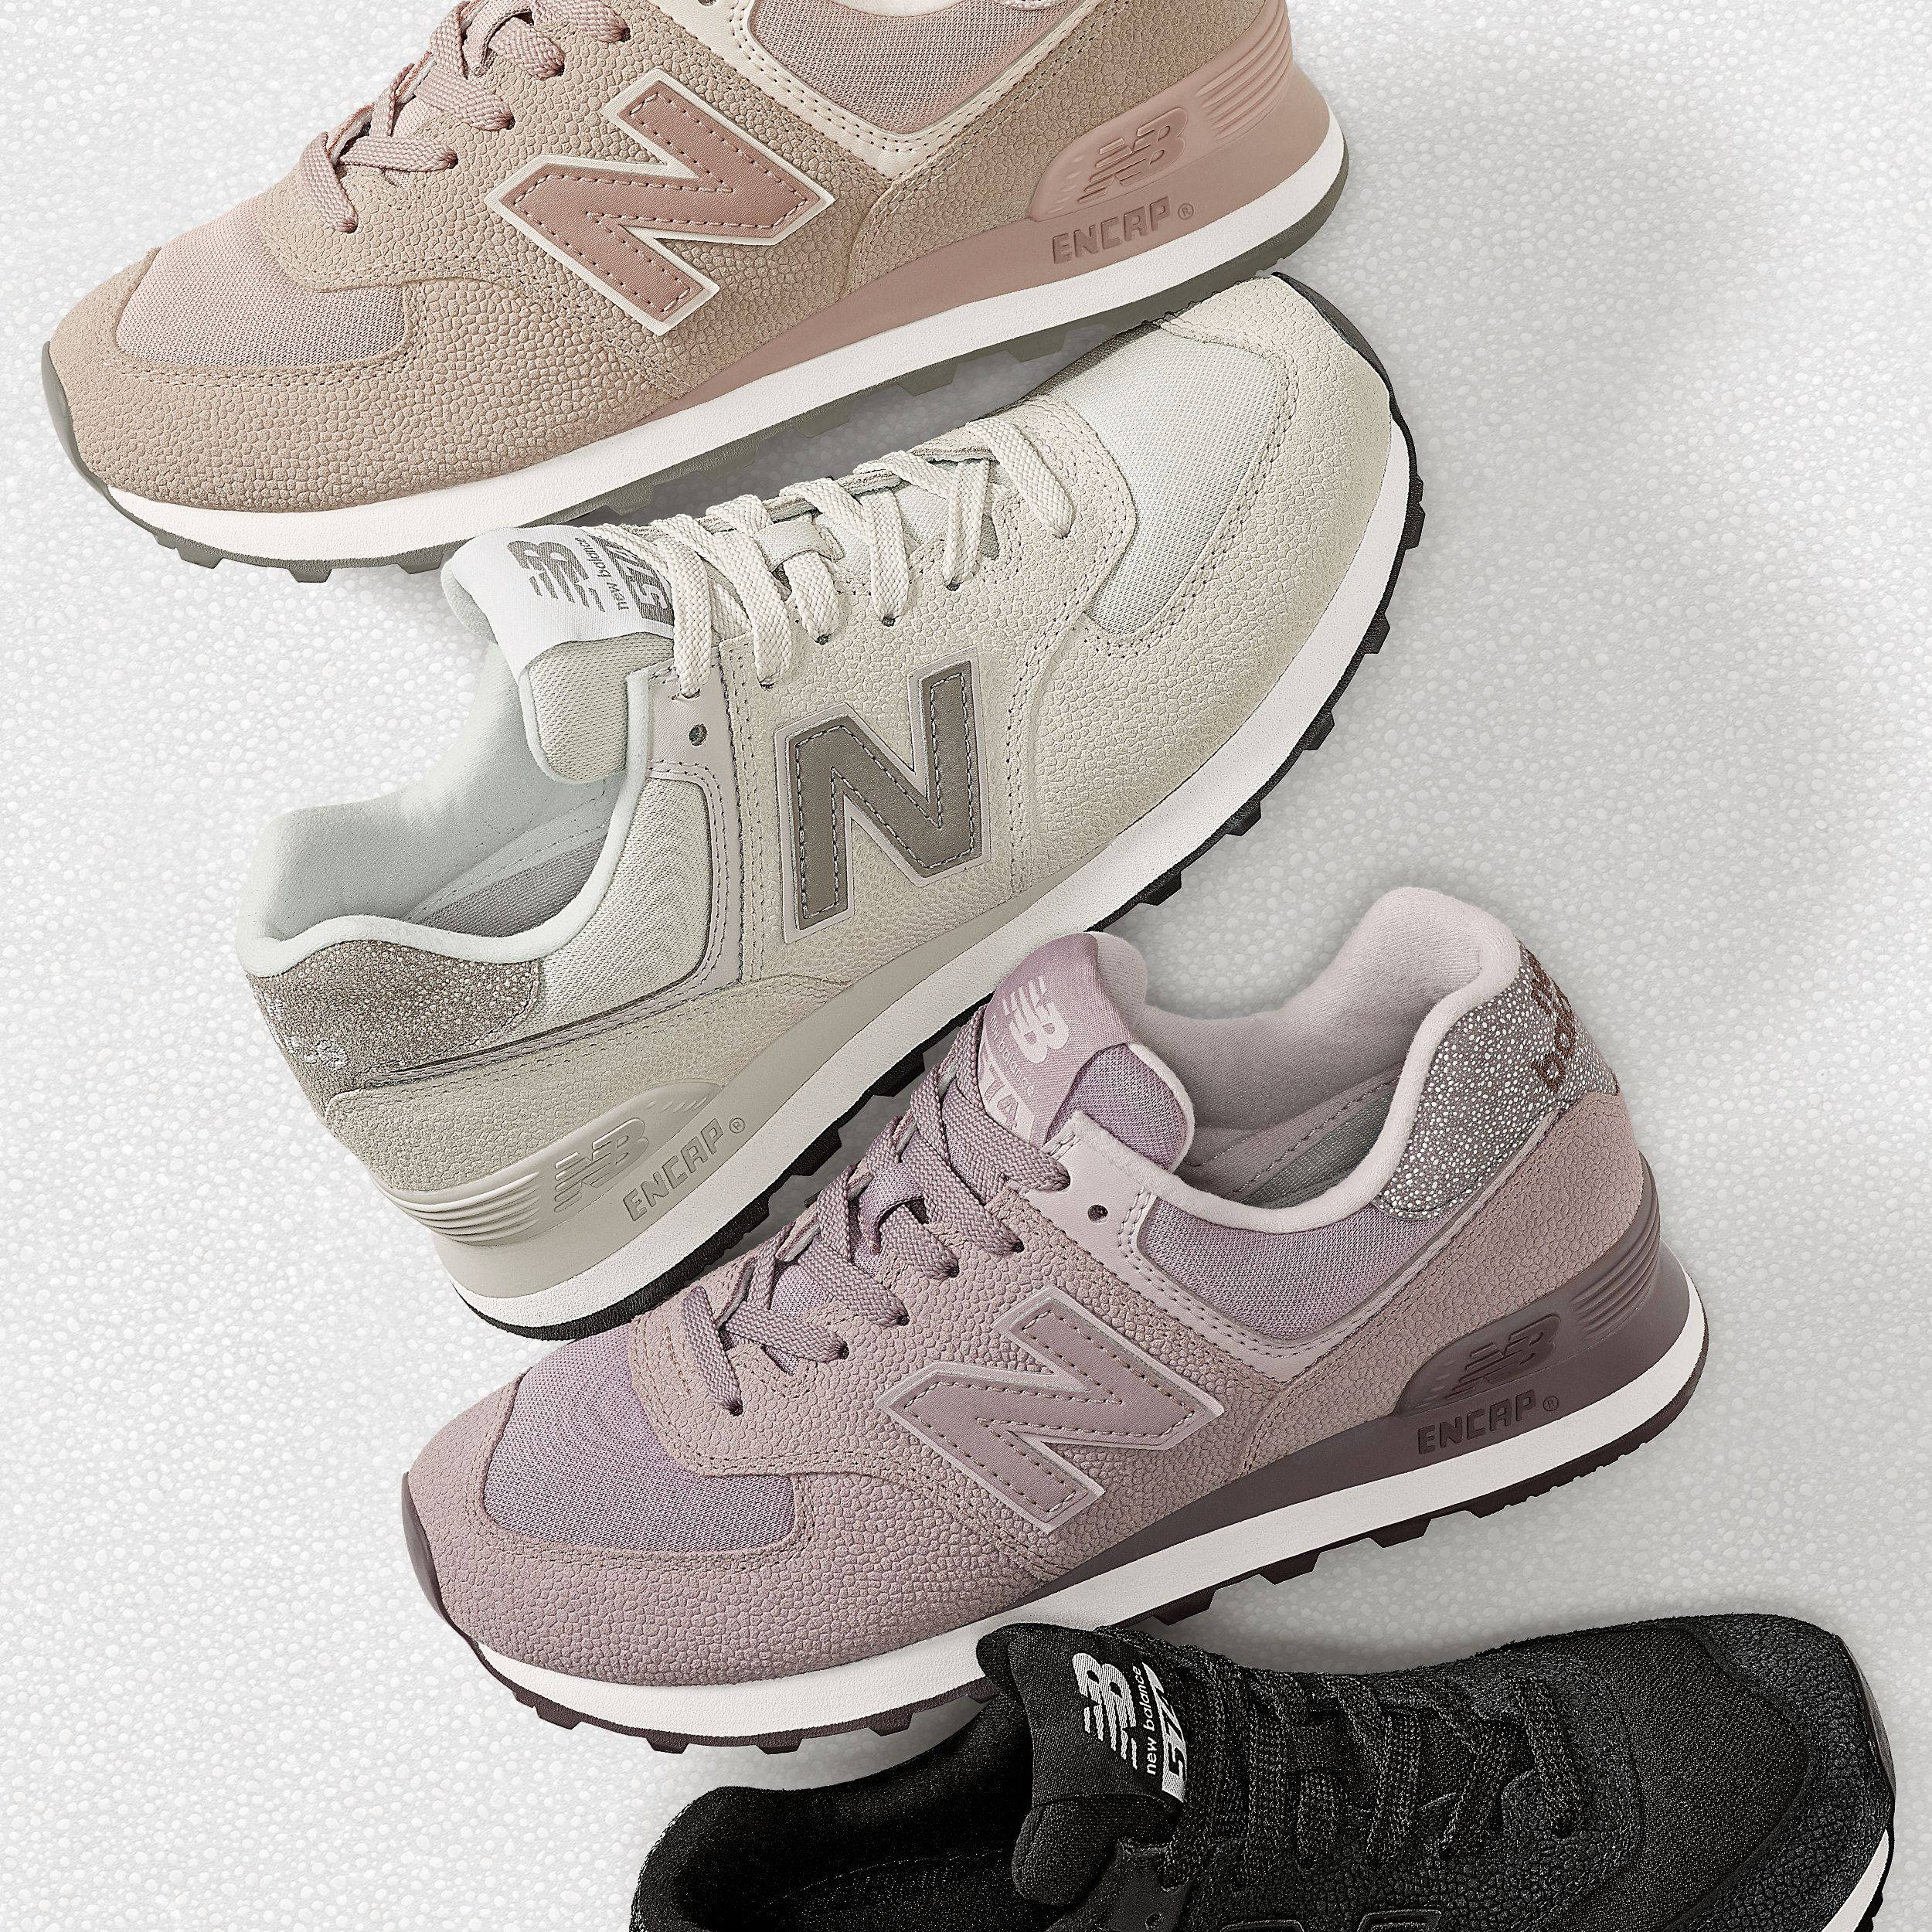 665ce866e323d The premium materials and craftsmanship you expect from New Balance come  together to create this subtle textural twist on our iconic 574 women's shoe .